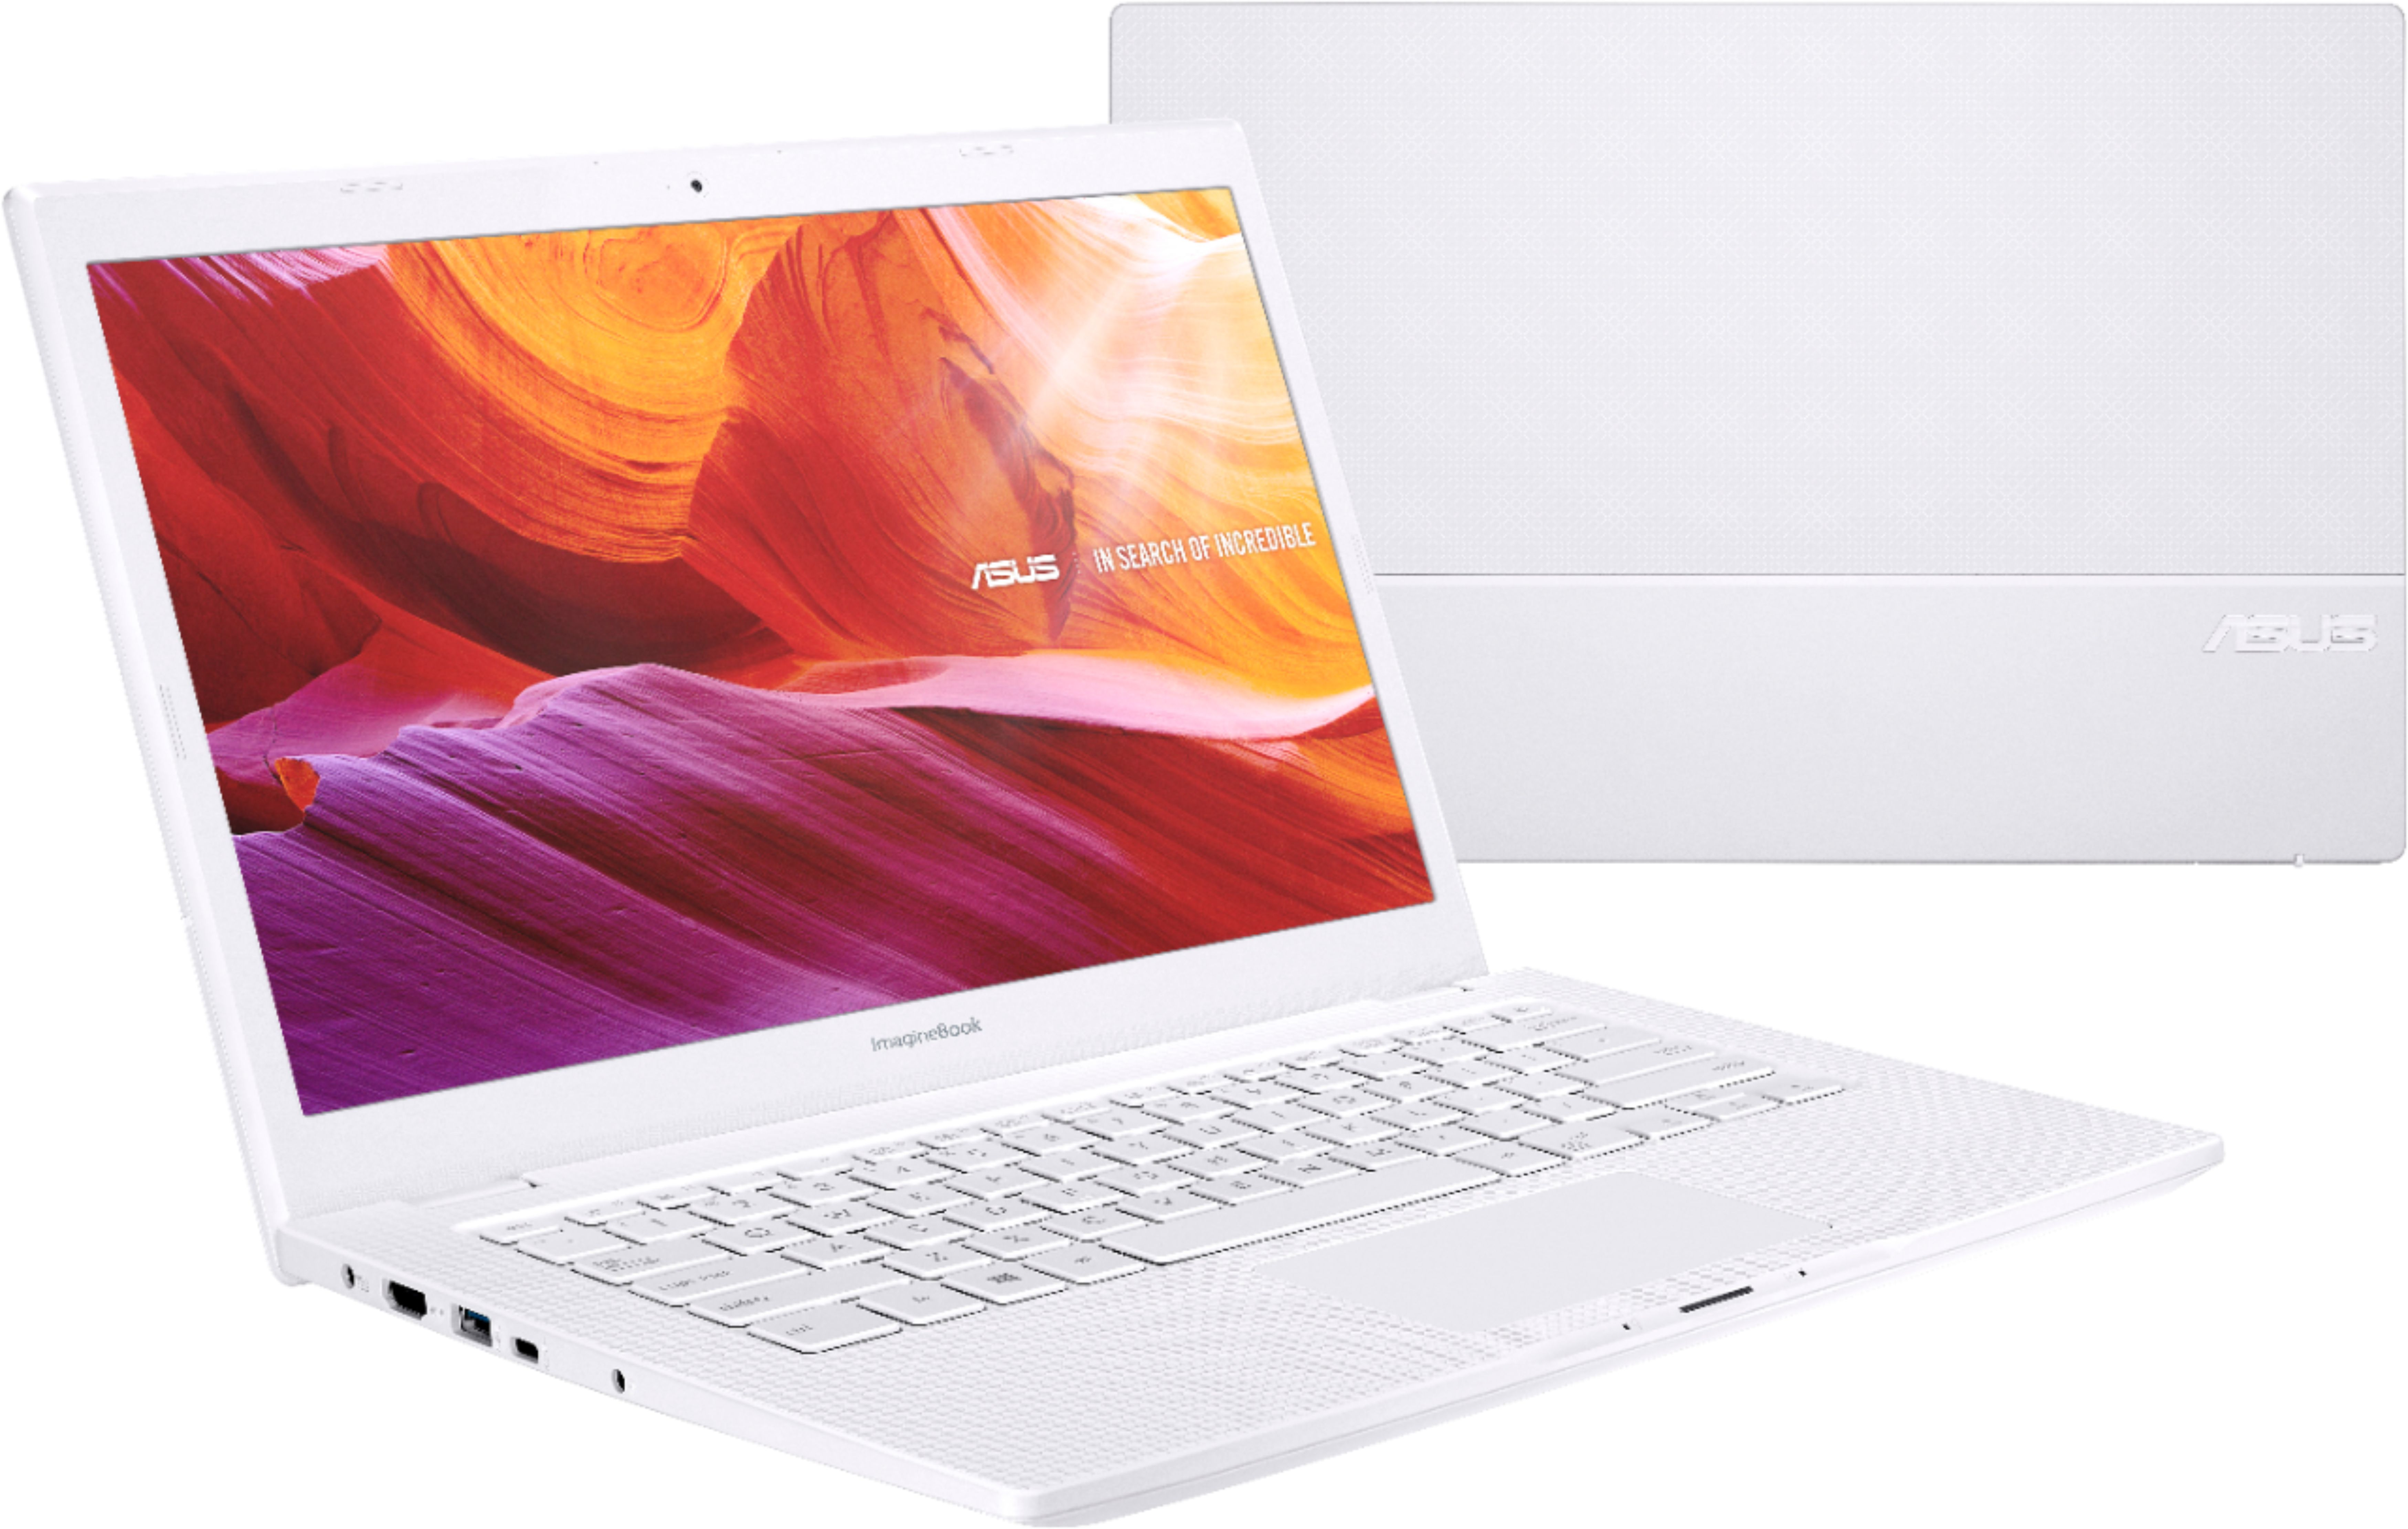 """Alt View Zoom 12. ASUS - Geek Squad Certified Refurbished ImagineBook 14"""" Laptop - Intel Core m3 - 4GB Memory - 128GB Solid State Drive - Textured White."""